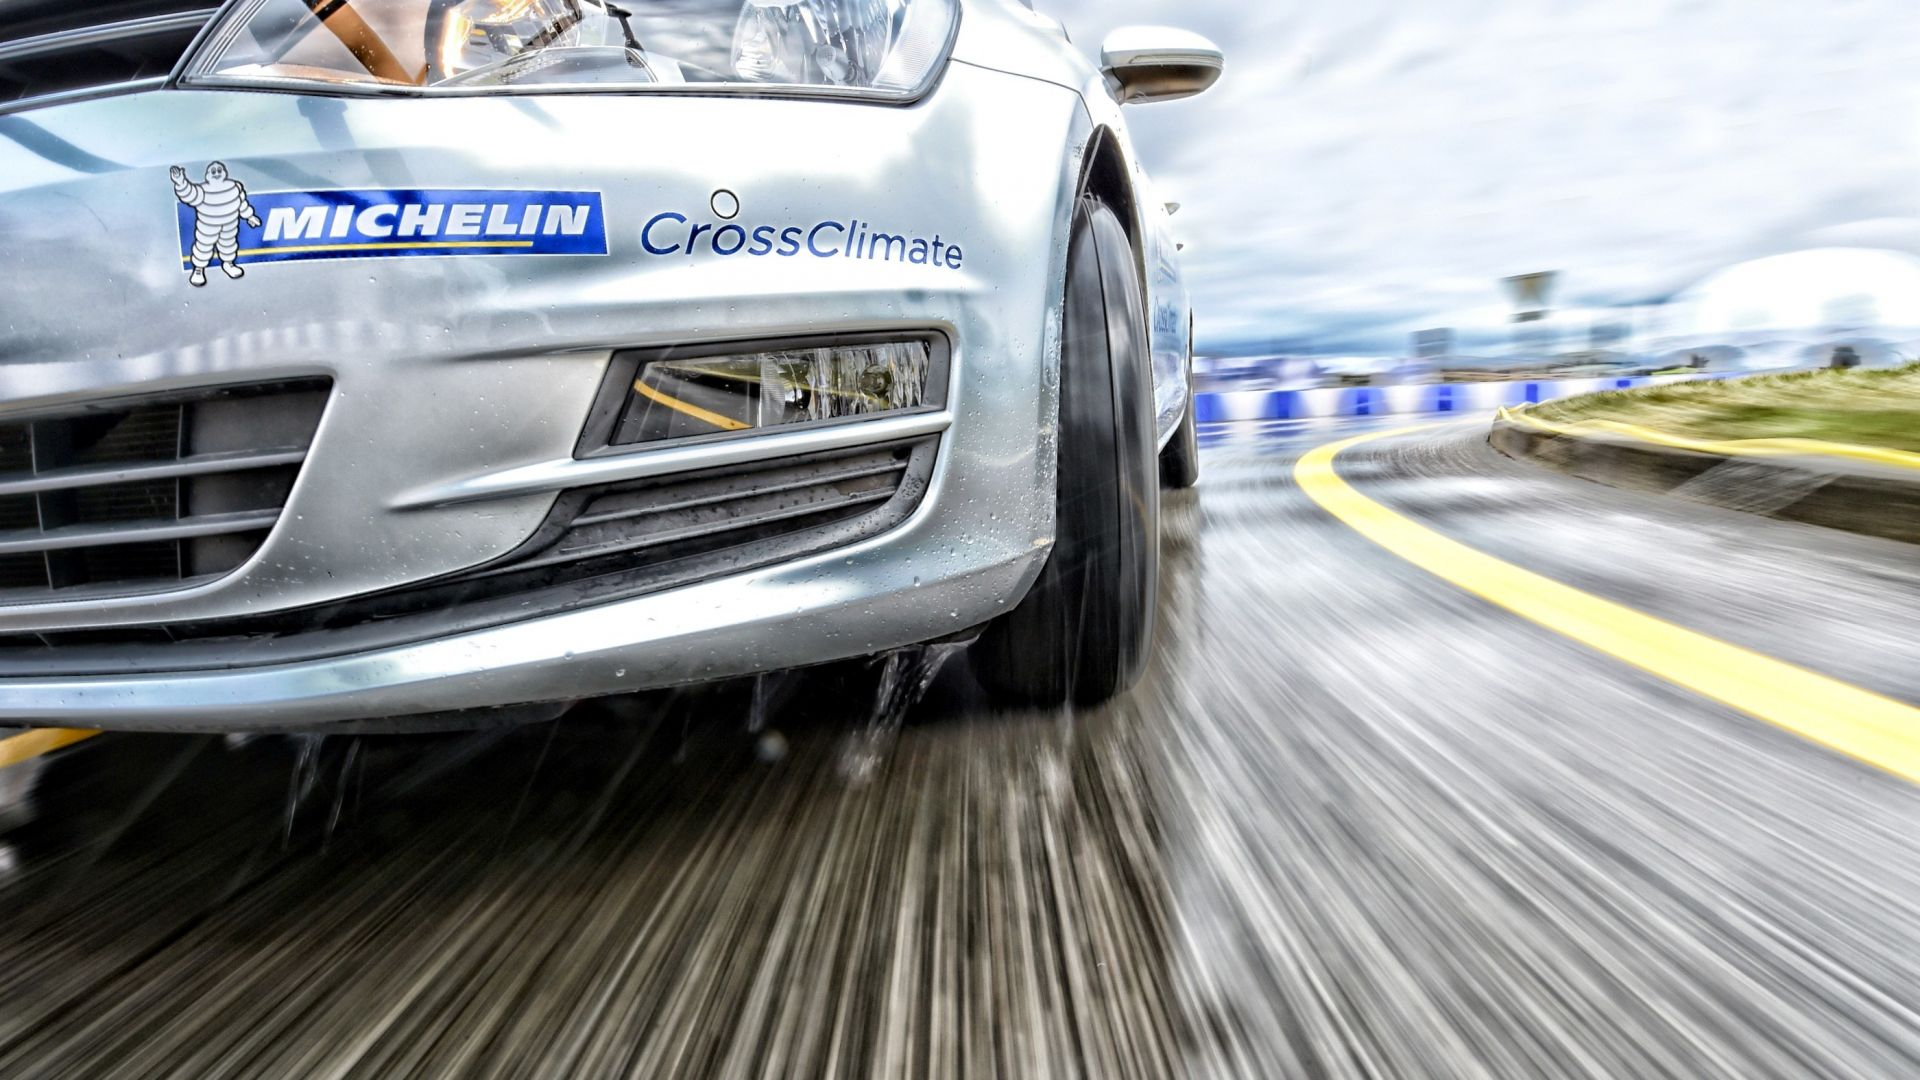 michelin crossclimate test